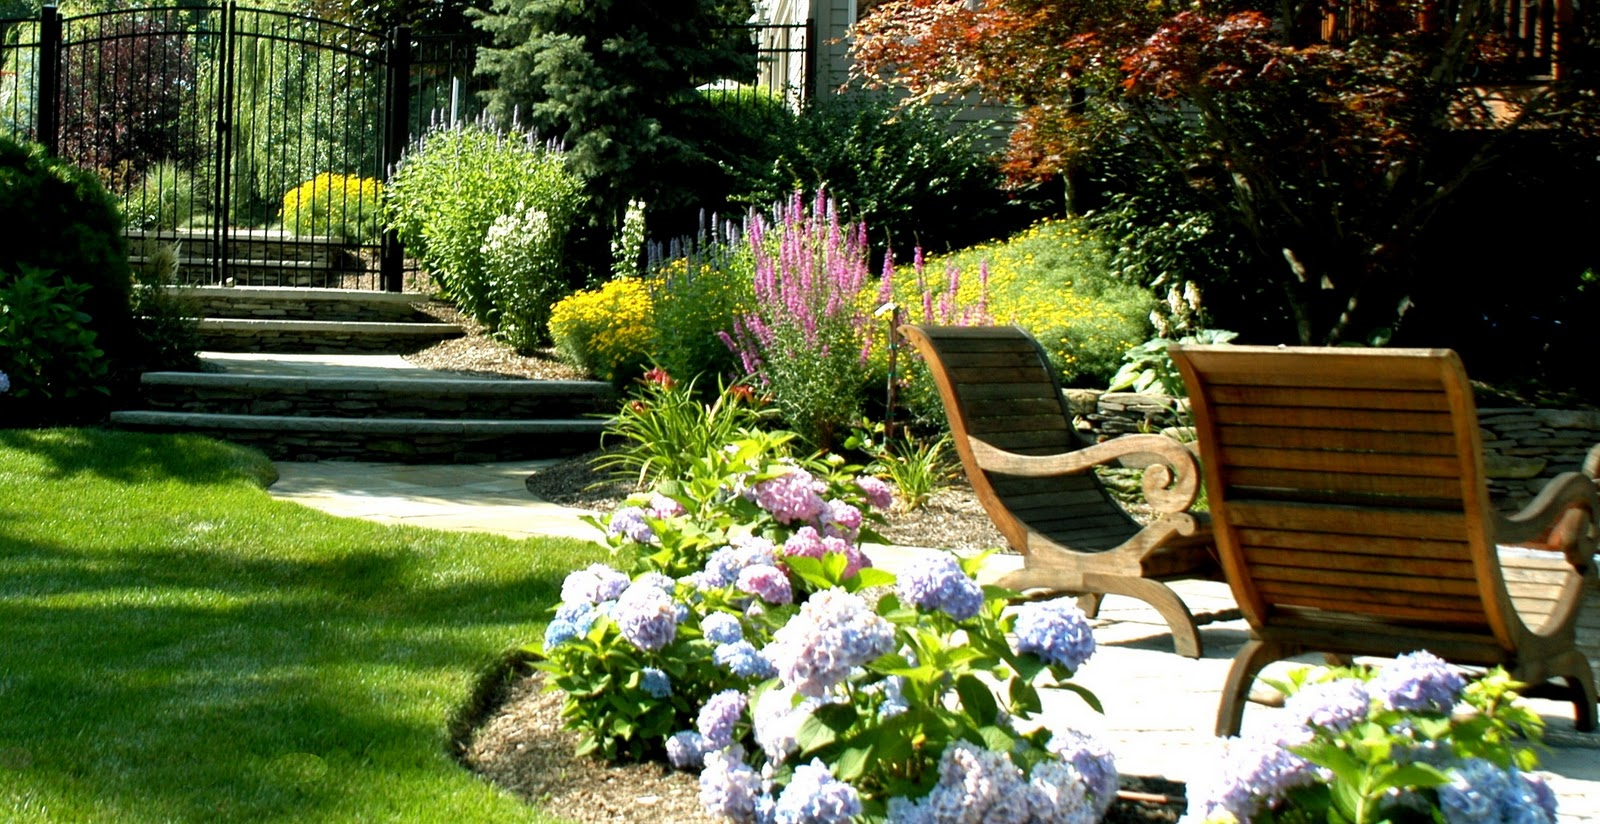 Hightechlandscapes new jersey landscape design for Best landscape designers